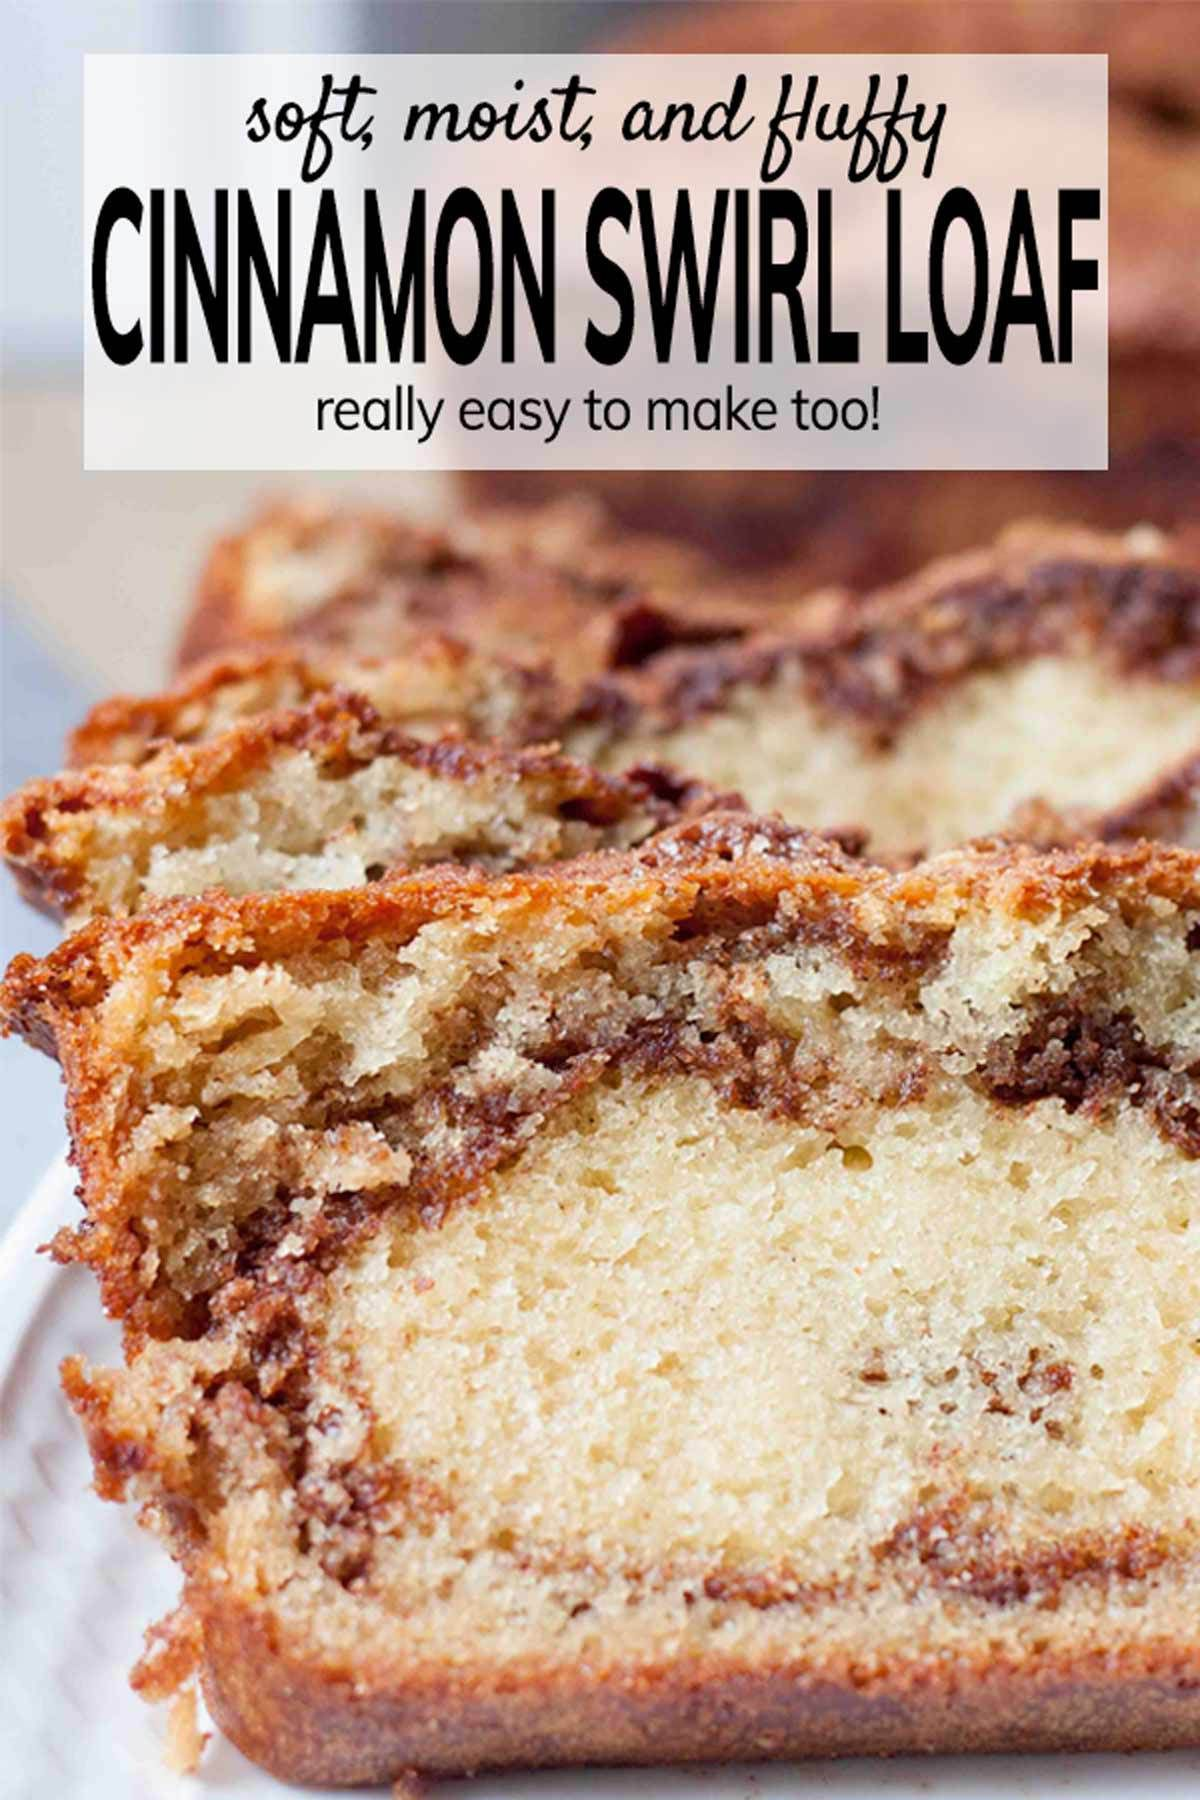 Easy Cinnamon Swirl Loaf Spoonful Of Butter Recipe Cinnamon Loaf Bread Cinnamon Loaf Bread Recipes Cinnamon Loaf